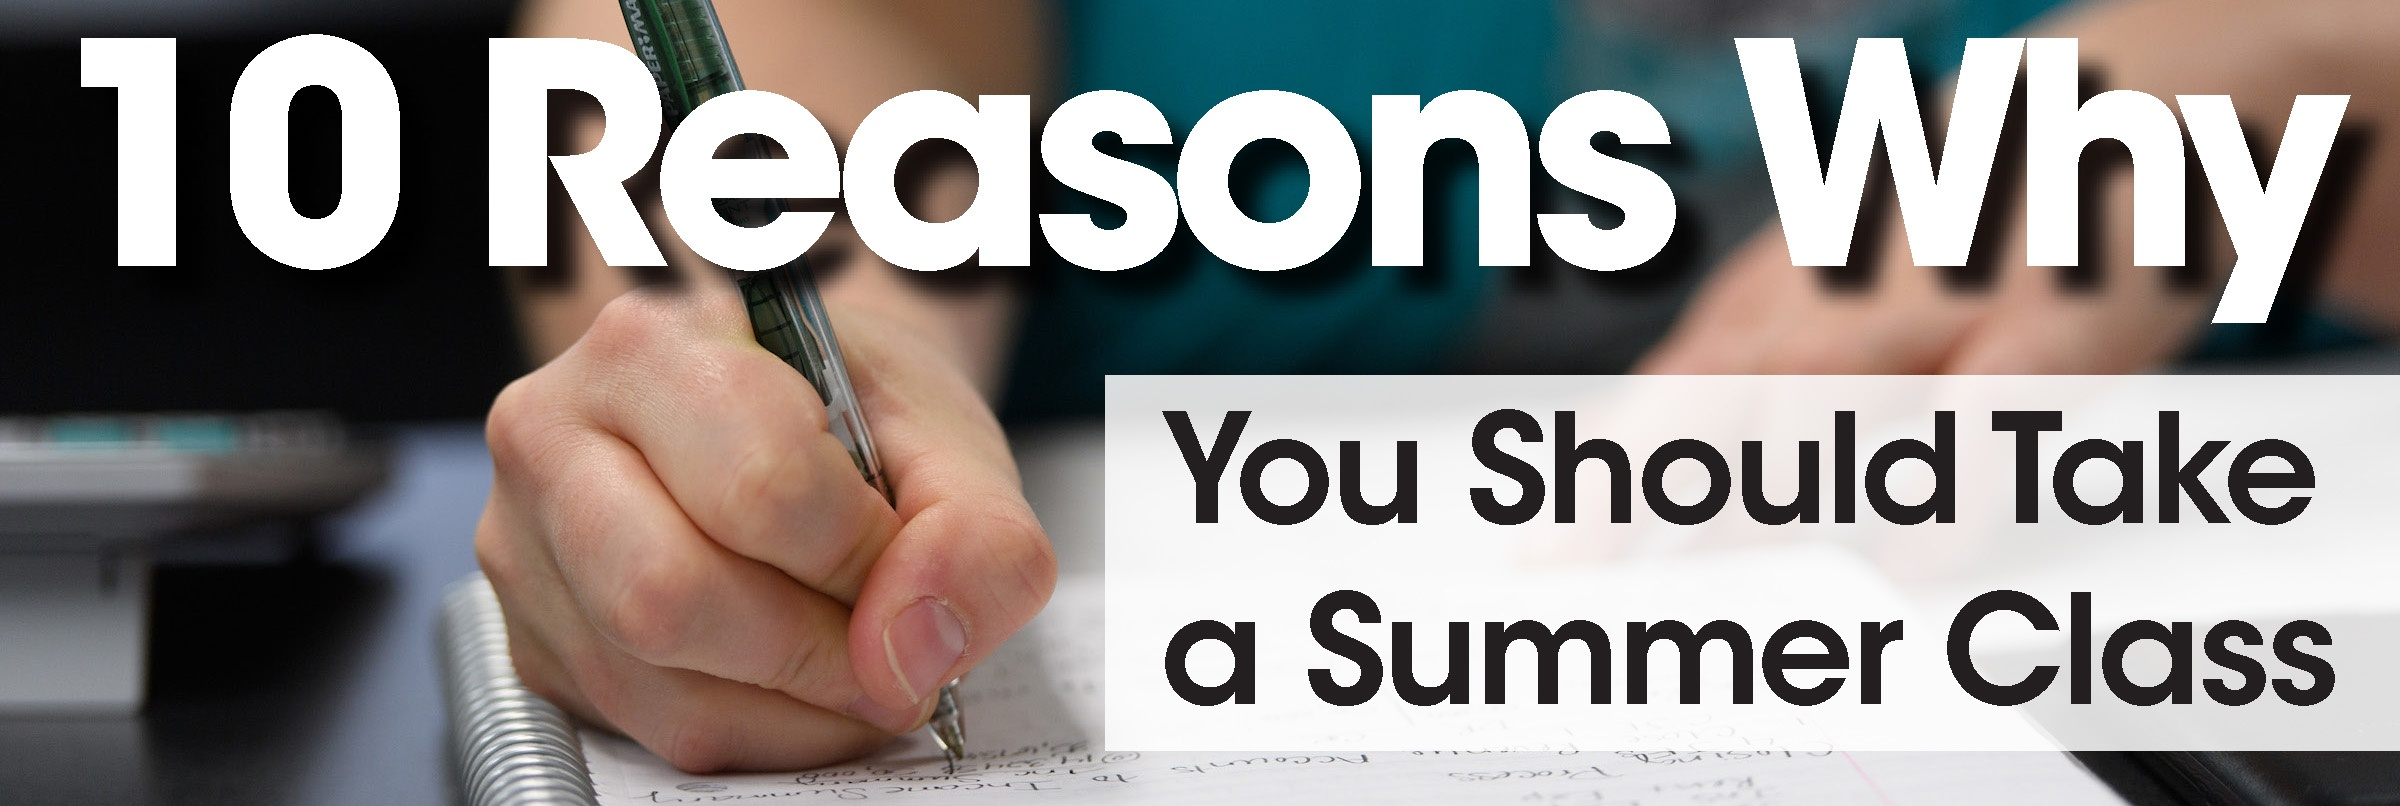 10 reasons why you should take a summer class jjc joliet junior college